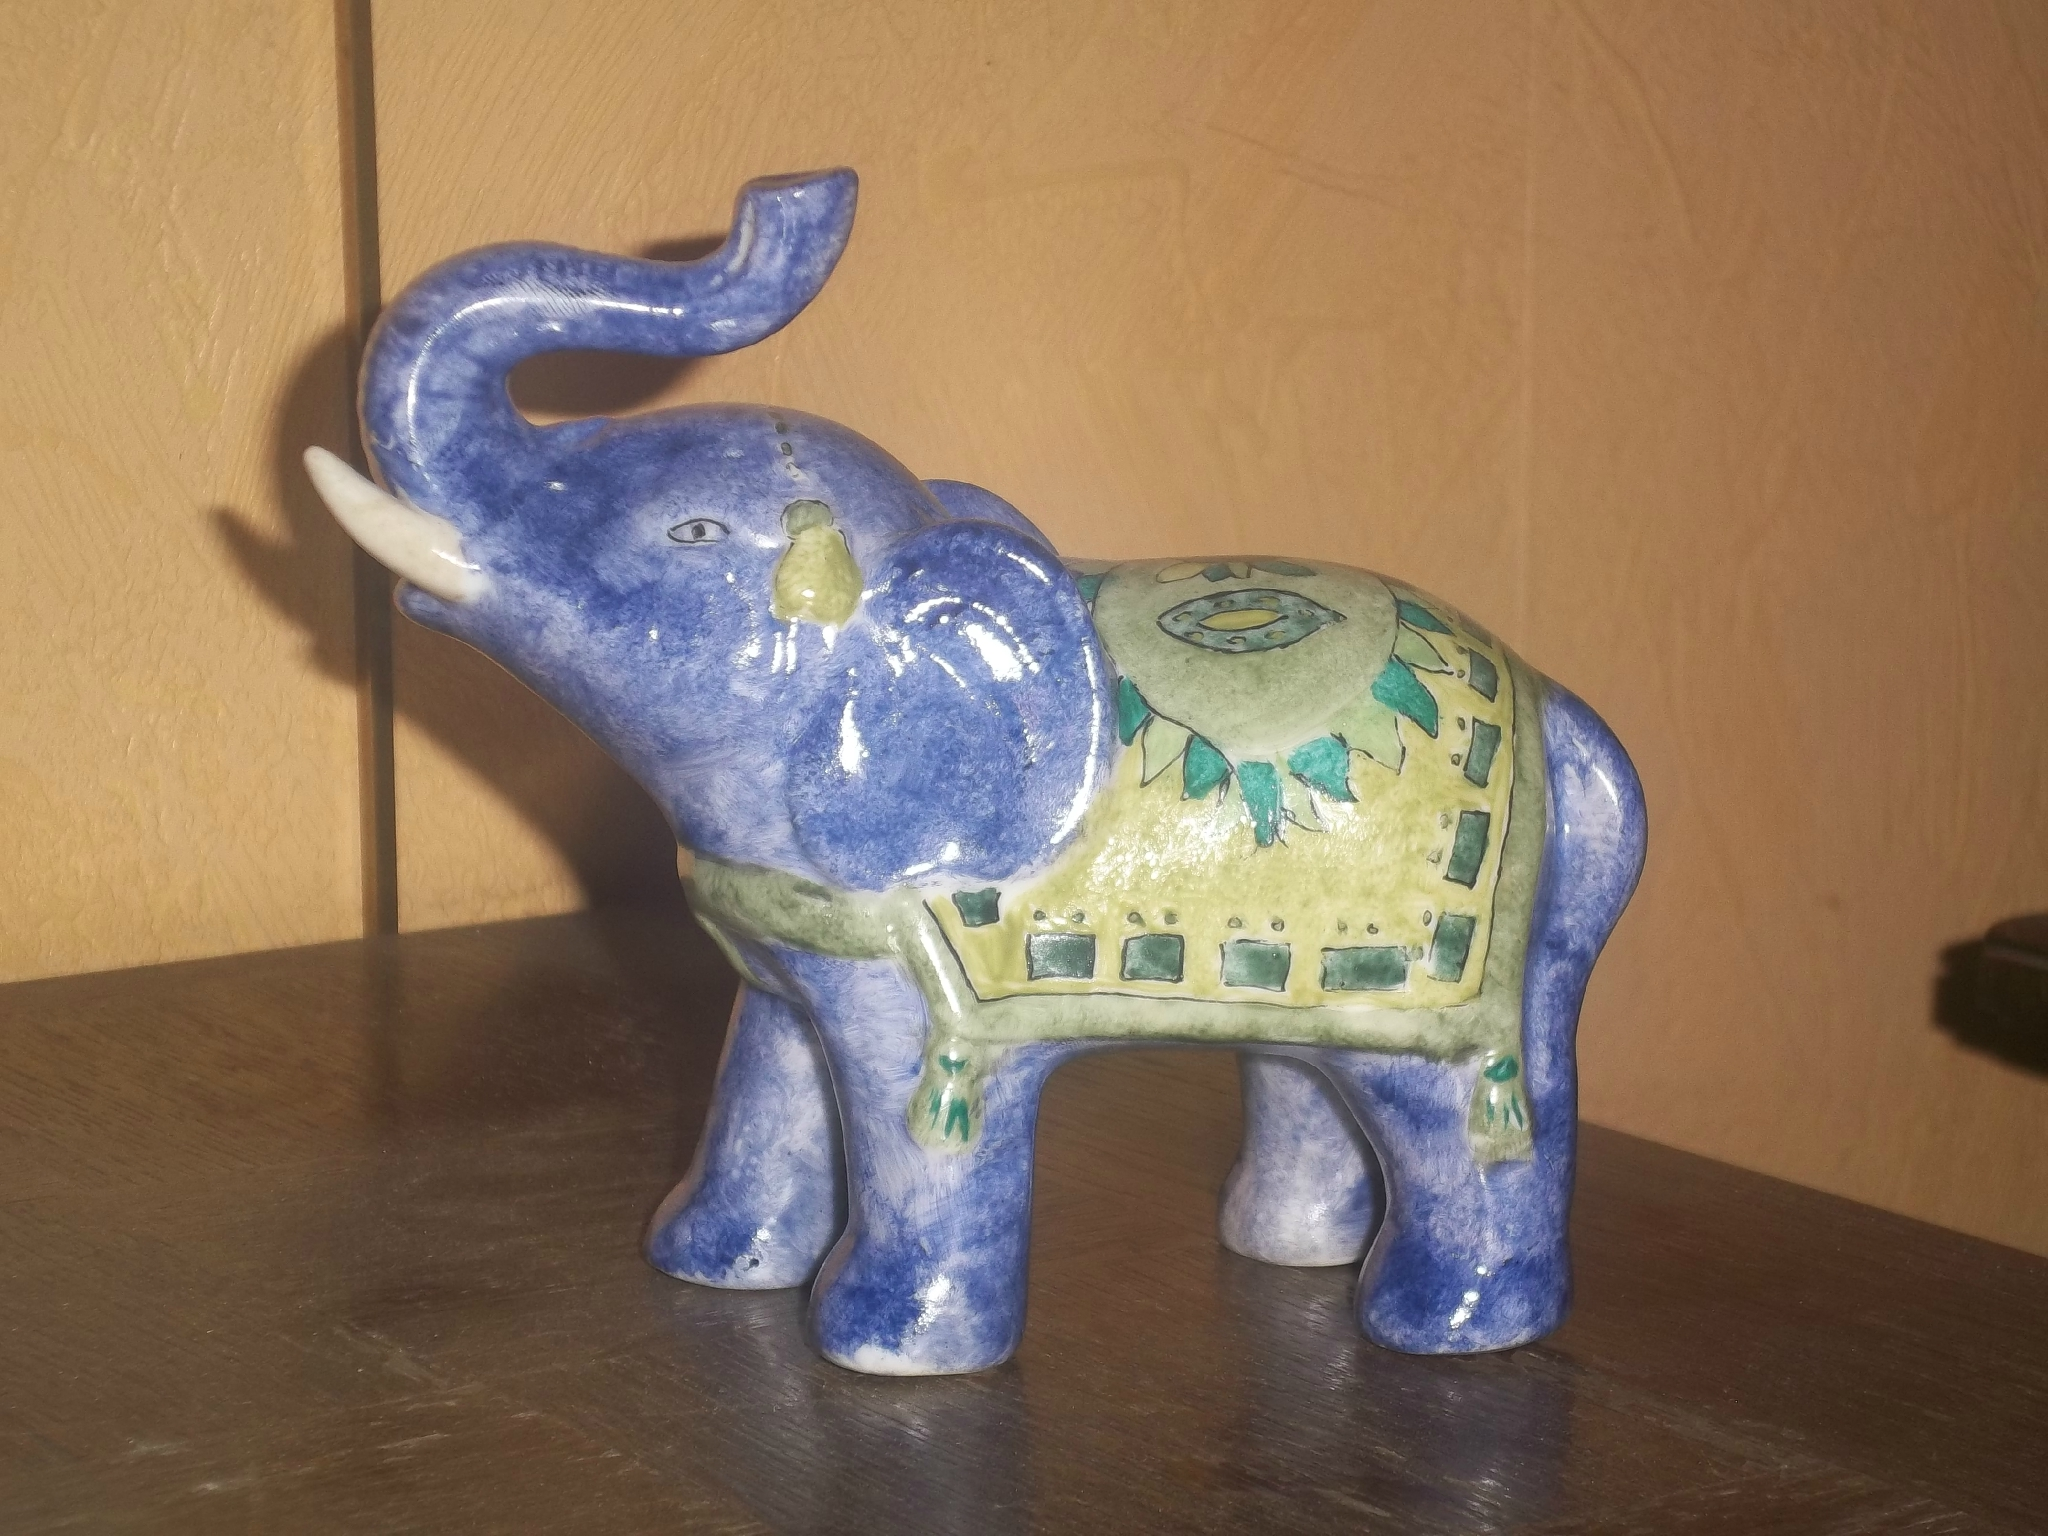 elephant porte bonheur photo de peinture sur porcelaine. Black Bedroom Furniture Sets. Home Design Ideas